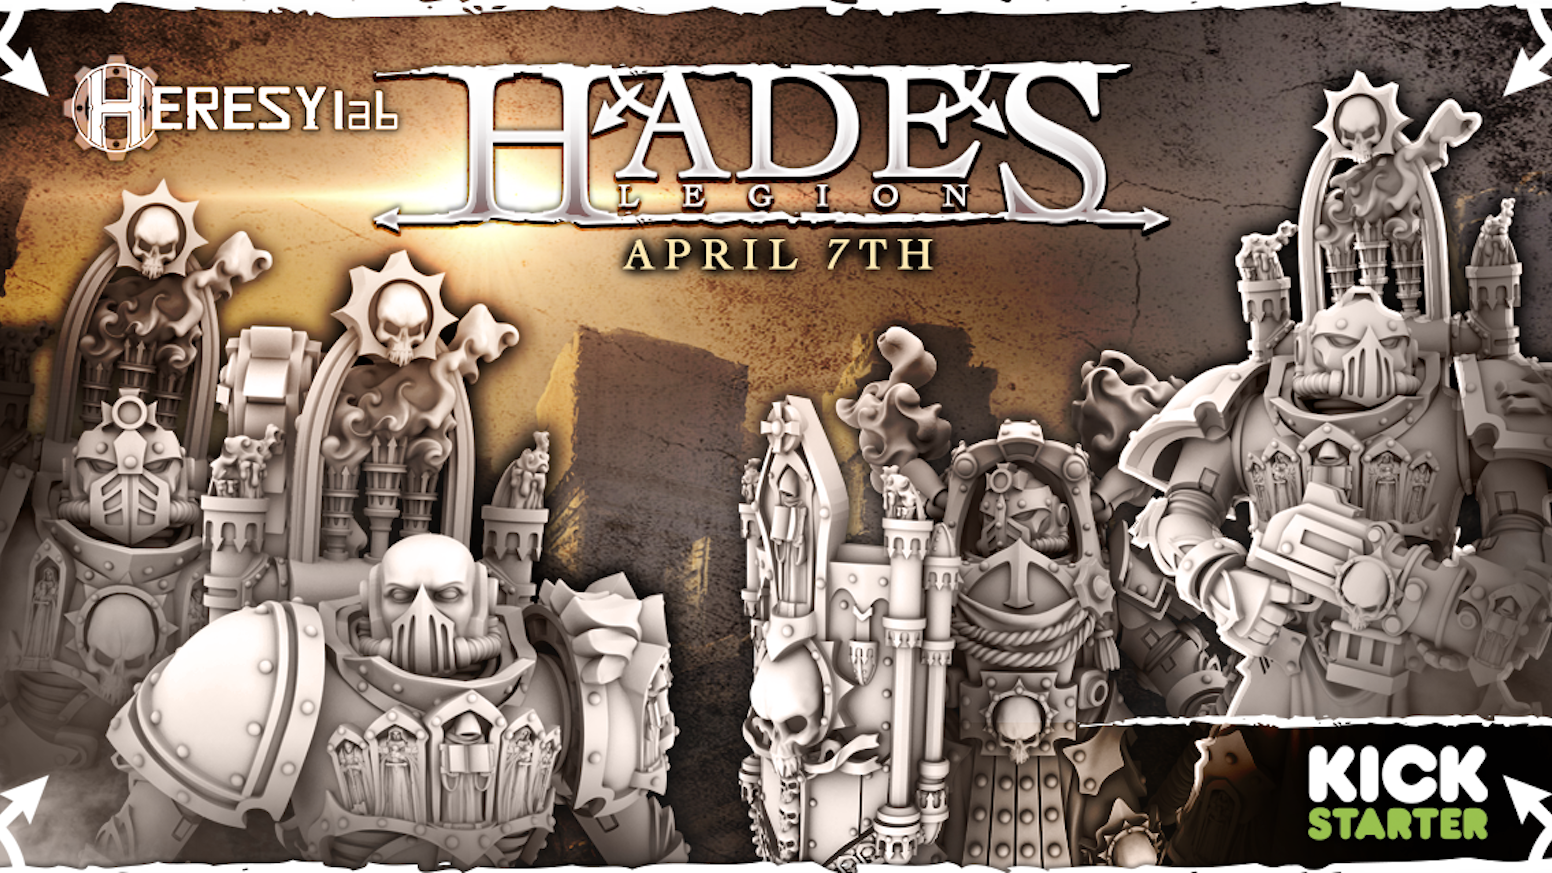 The Hades Legion 28mm heroic resin miniatures by HeresyLab - Miniatures, bikes, tanks and support weapon platforms plus many bits